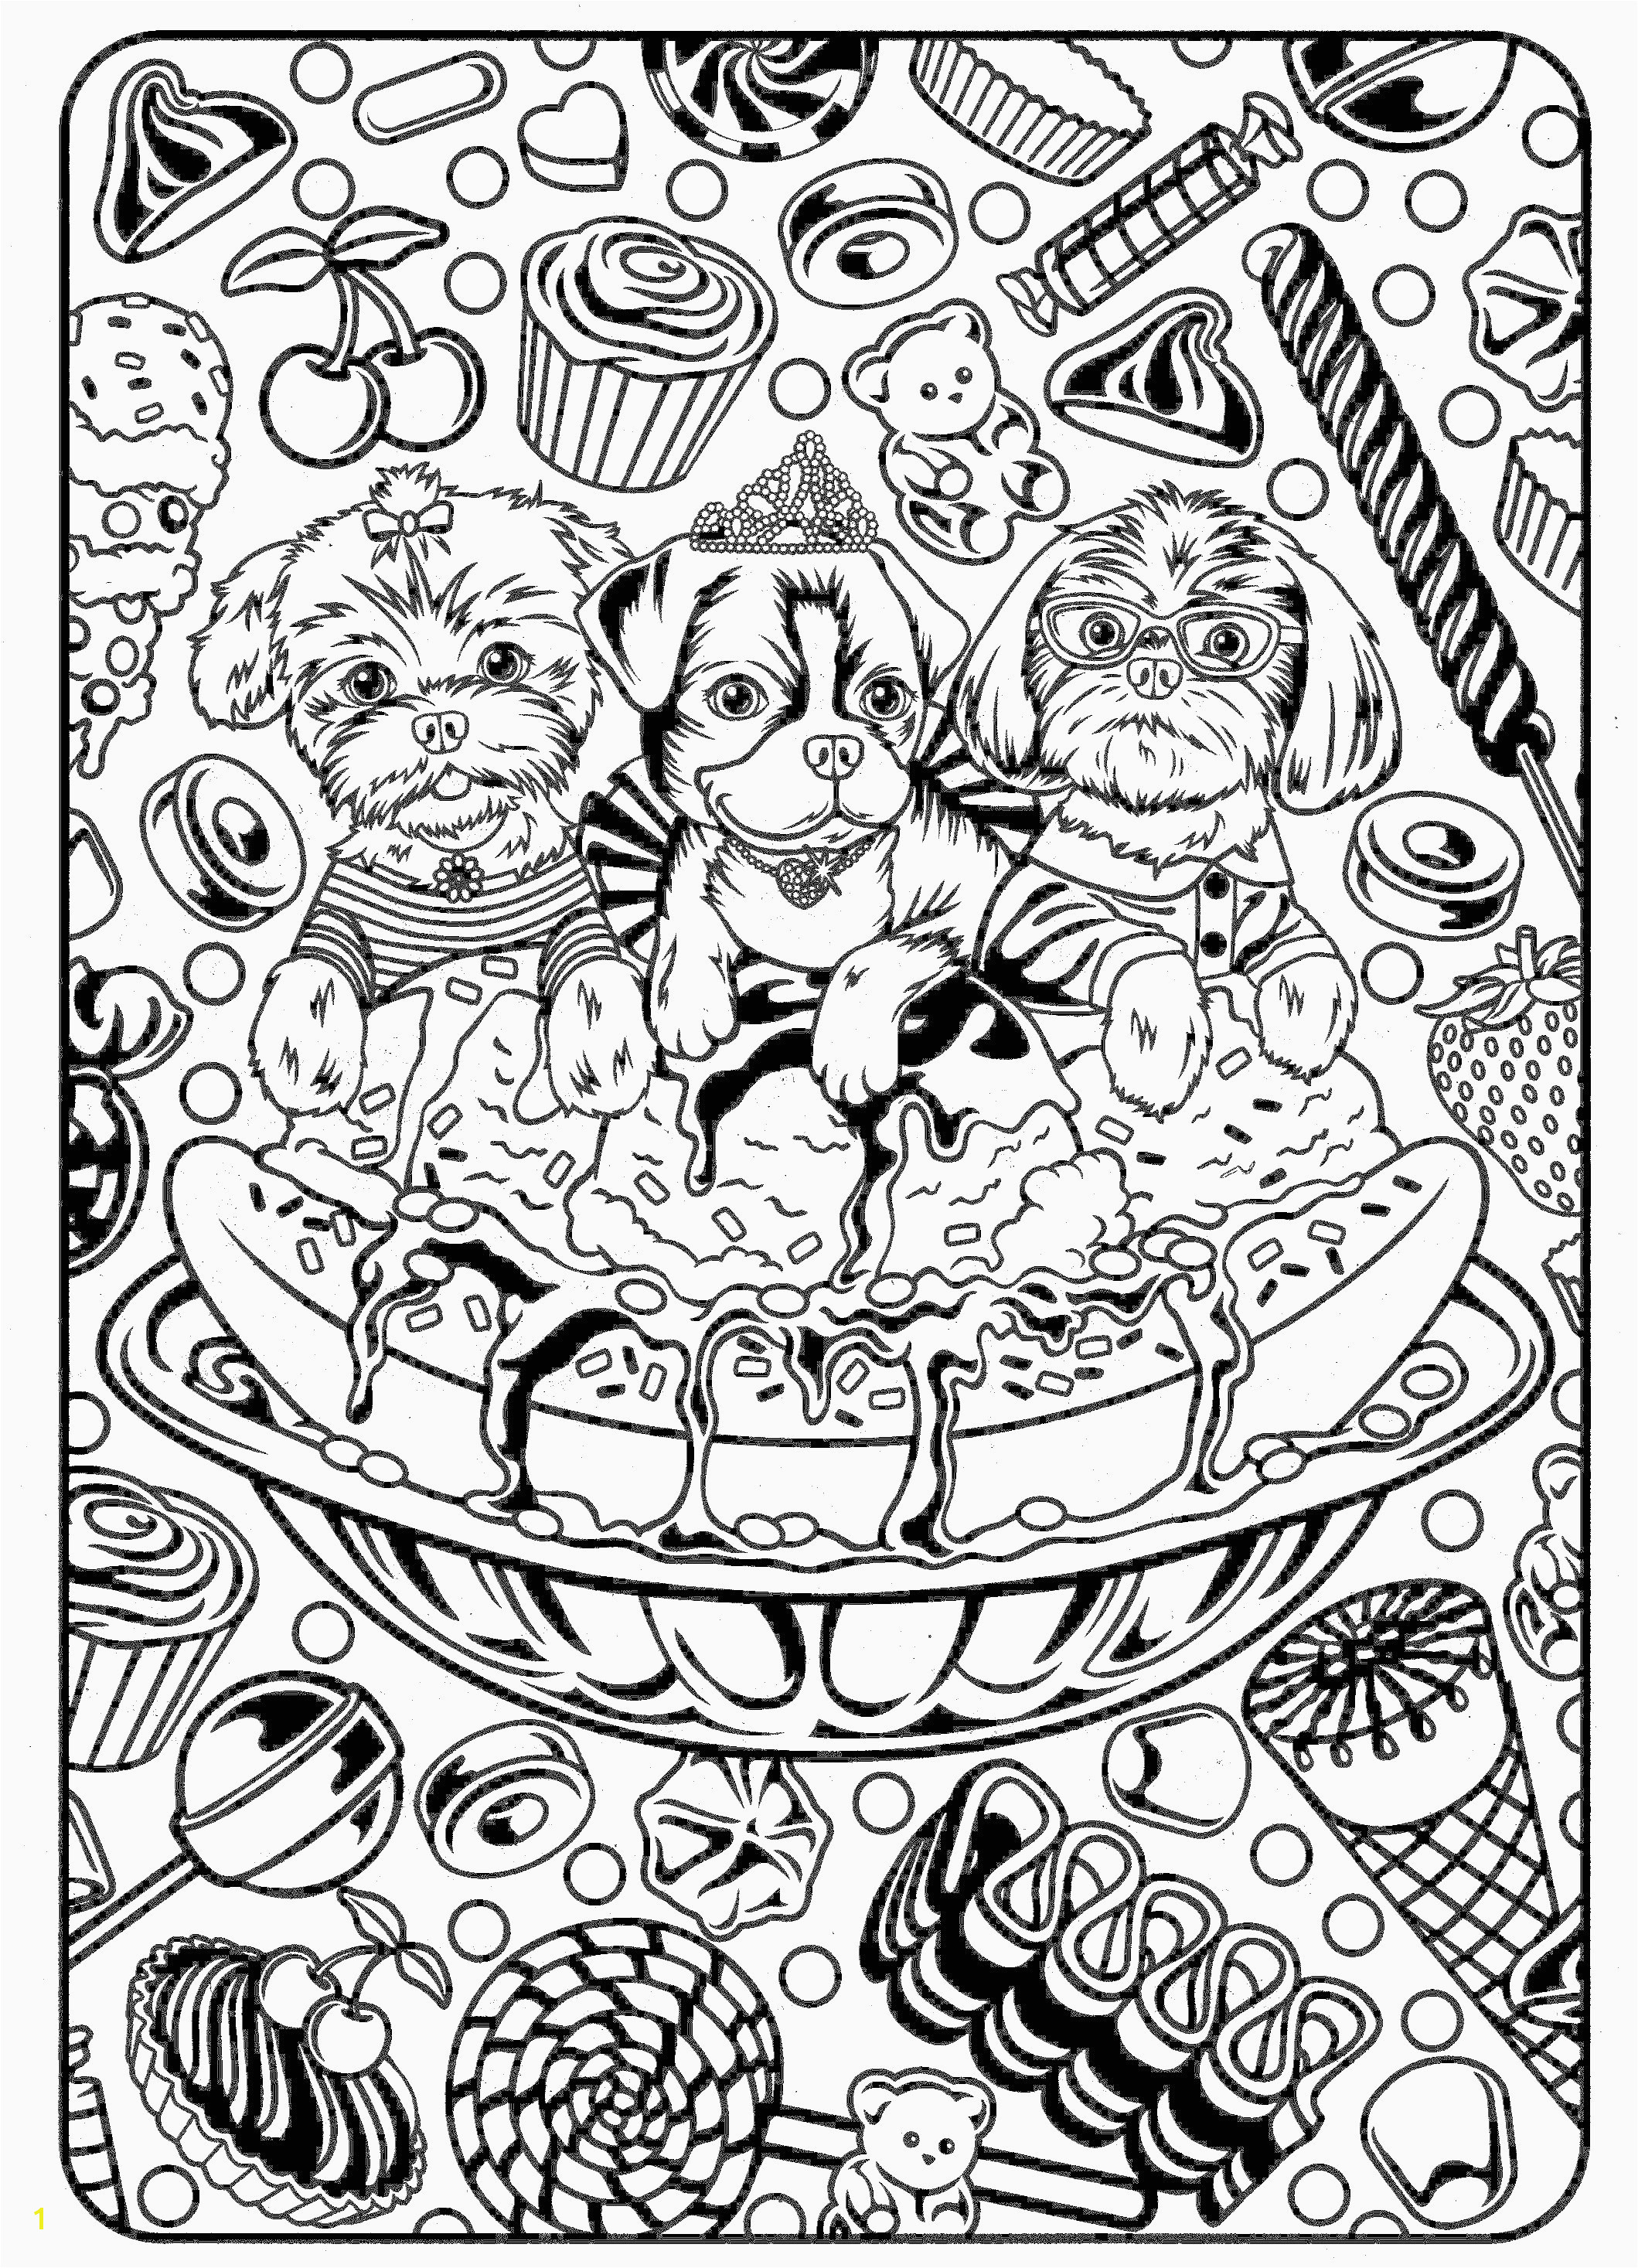 How To Get A Coloring Book Printed Coloring Pages